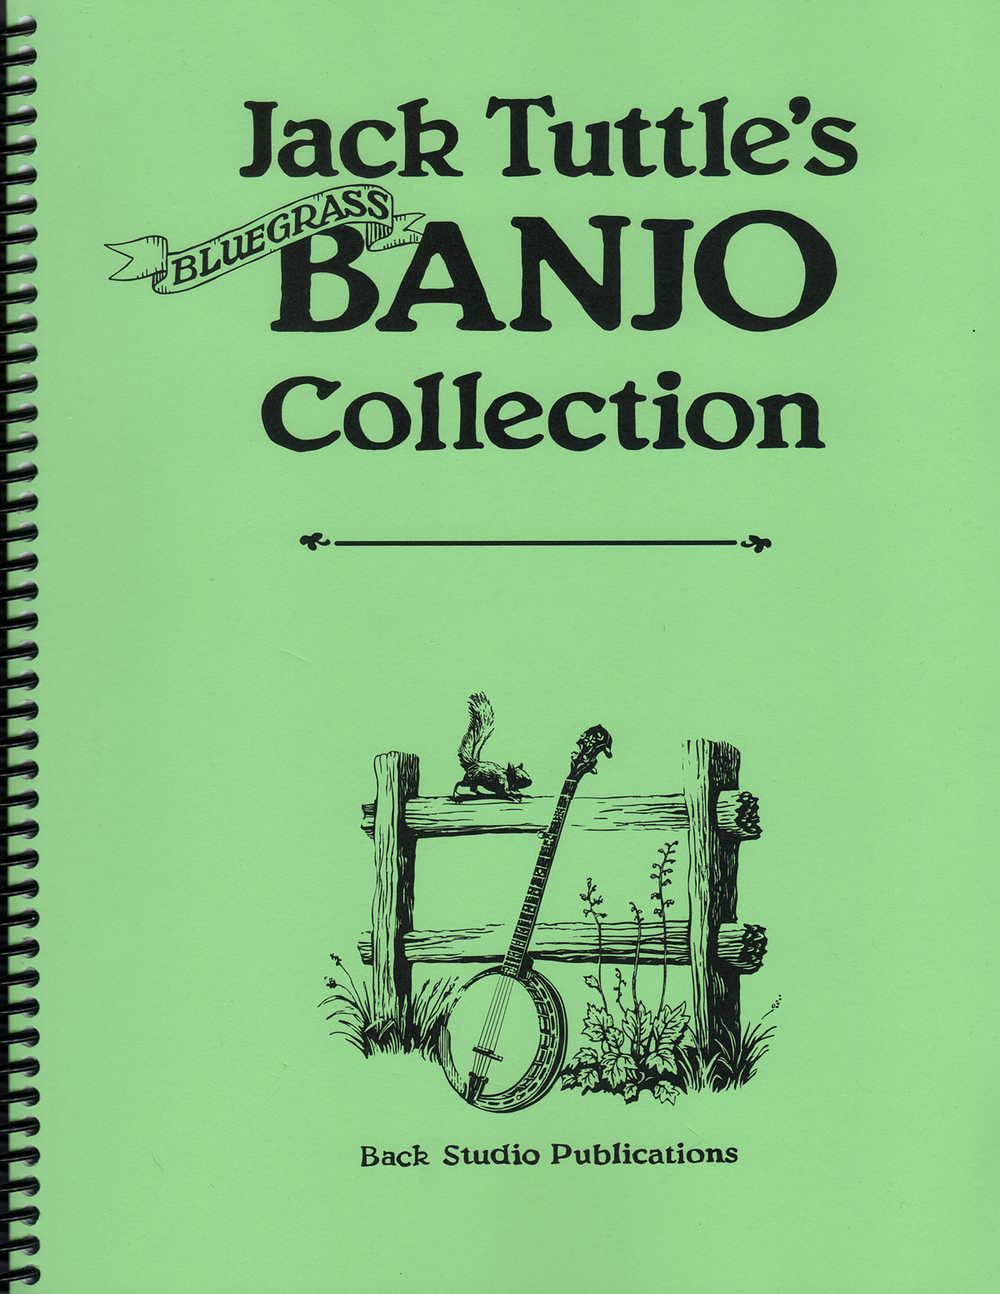 Jack Tuttle's Bluegrass Banjo Collection